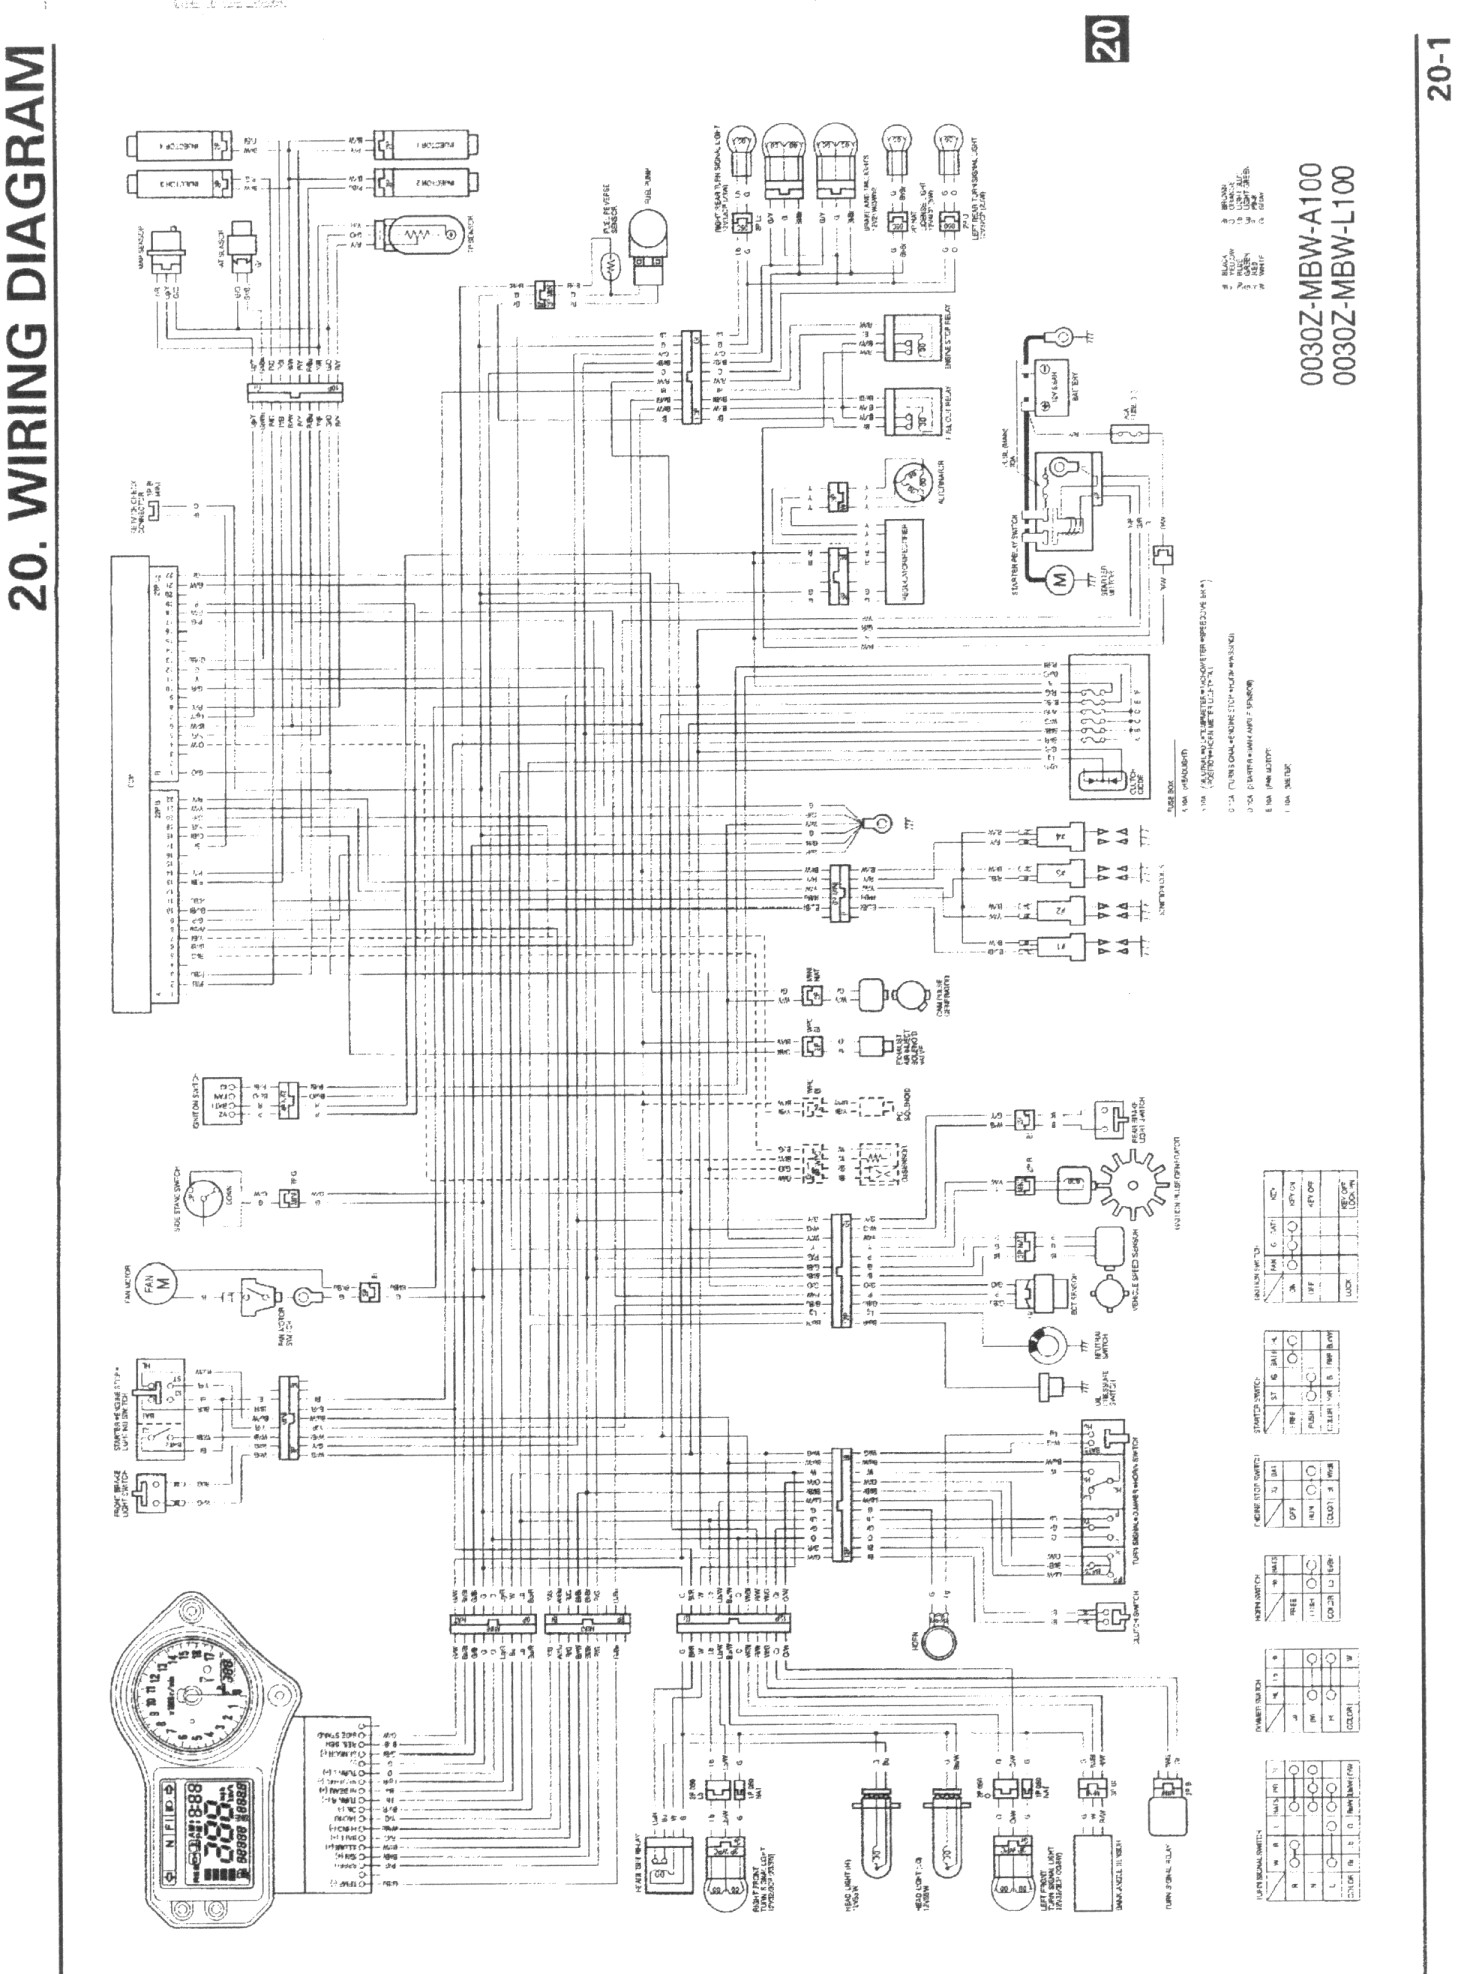 honda 2005 cbr 600 f4i wiring diagram   37 wiring diagram